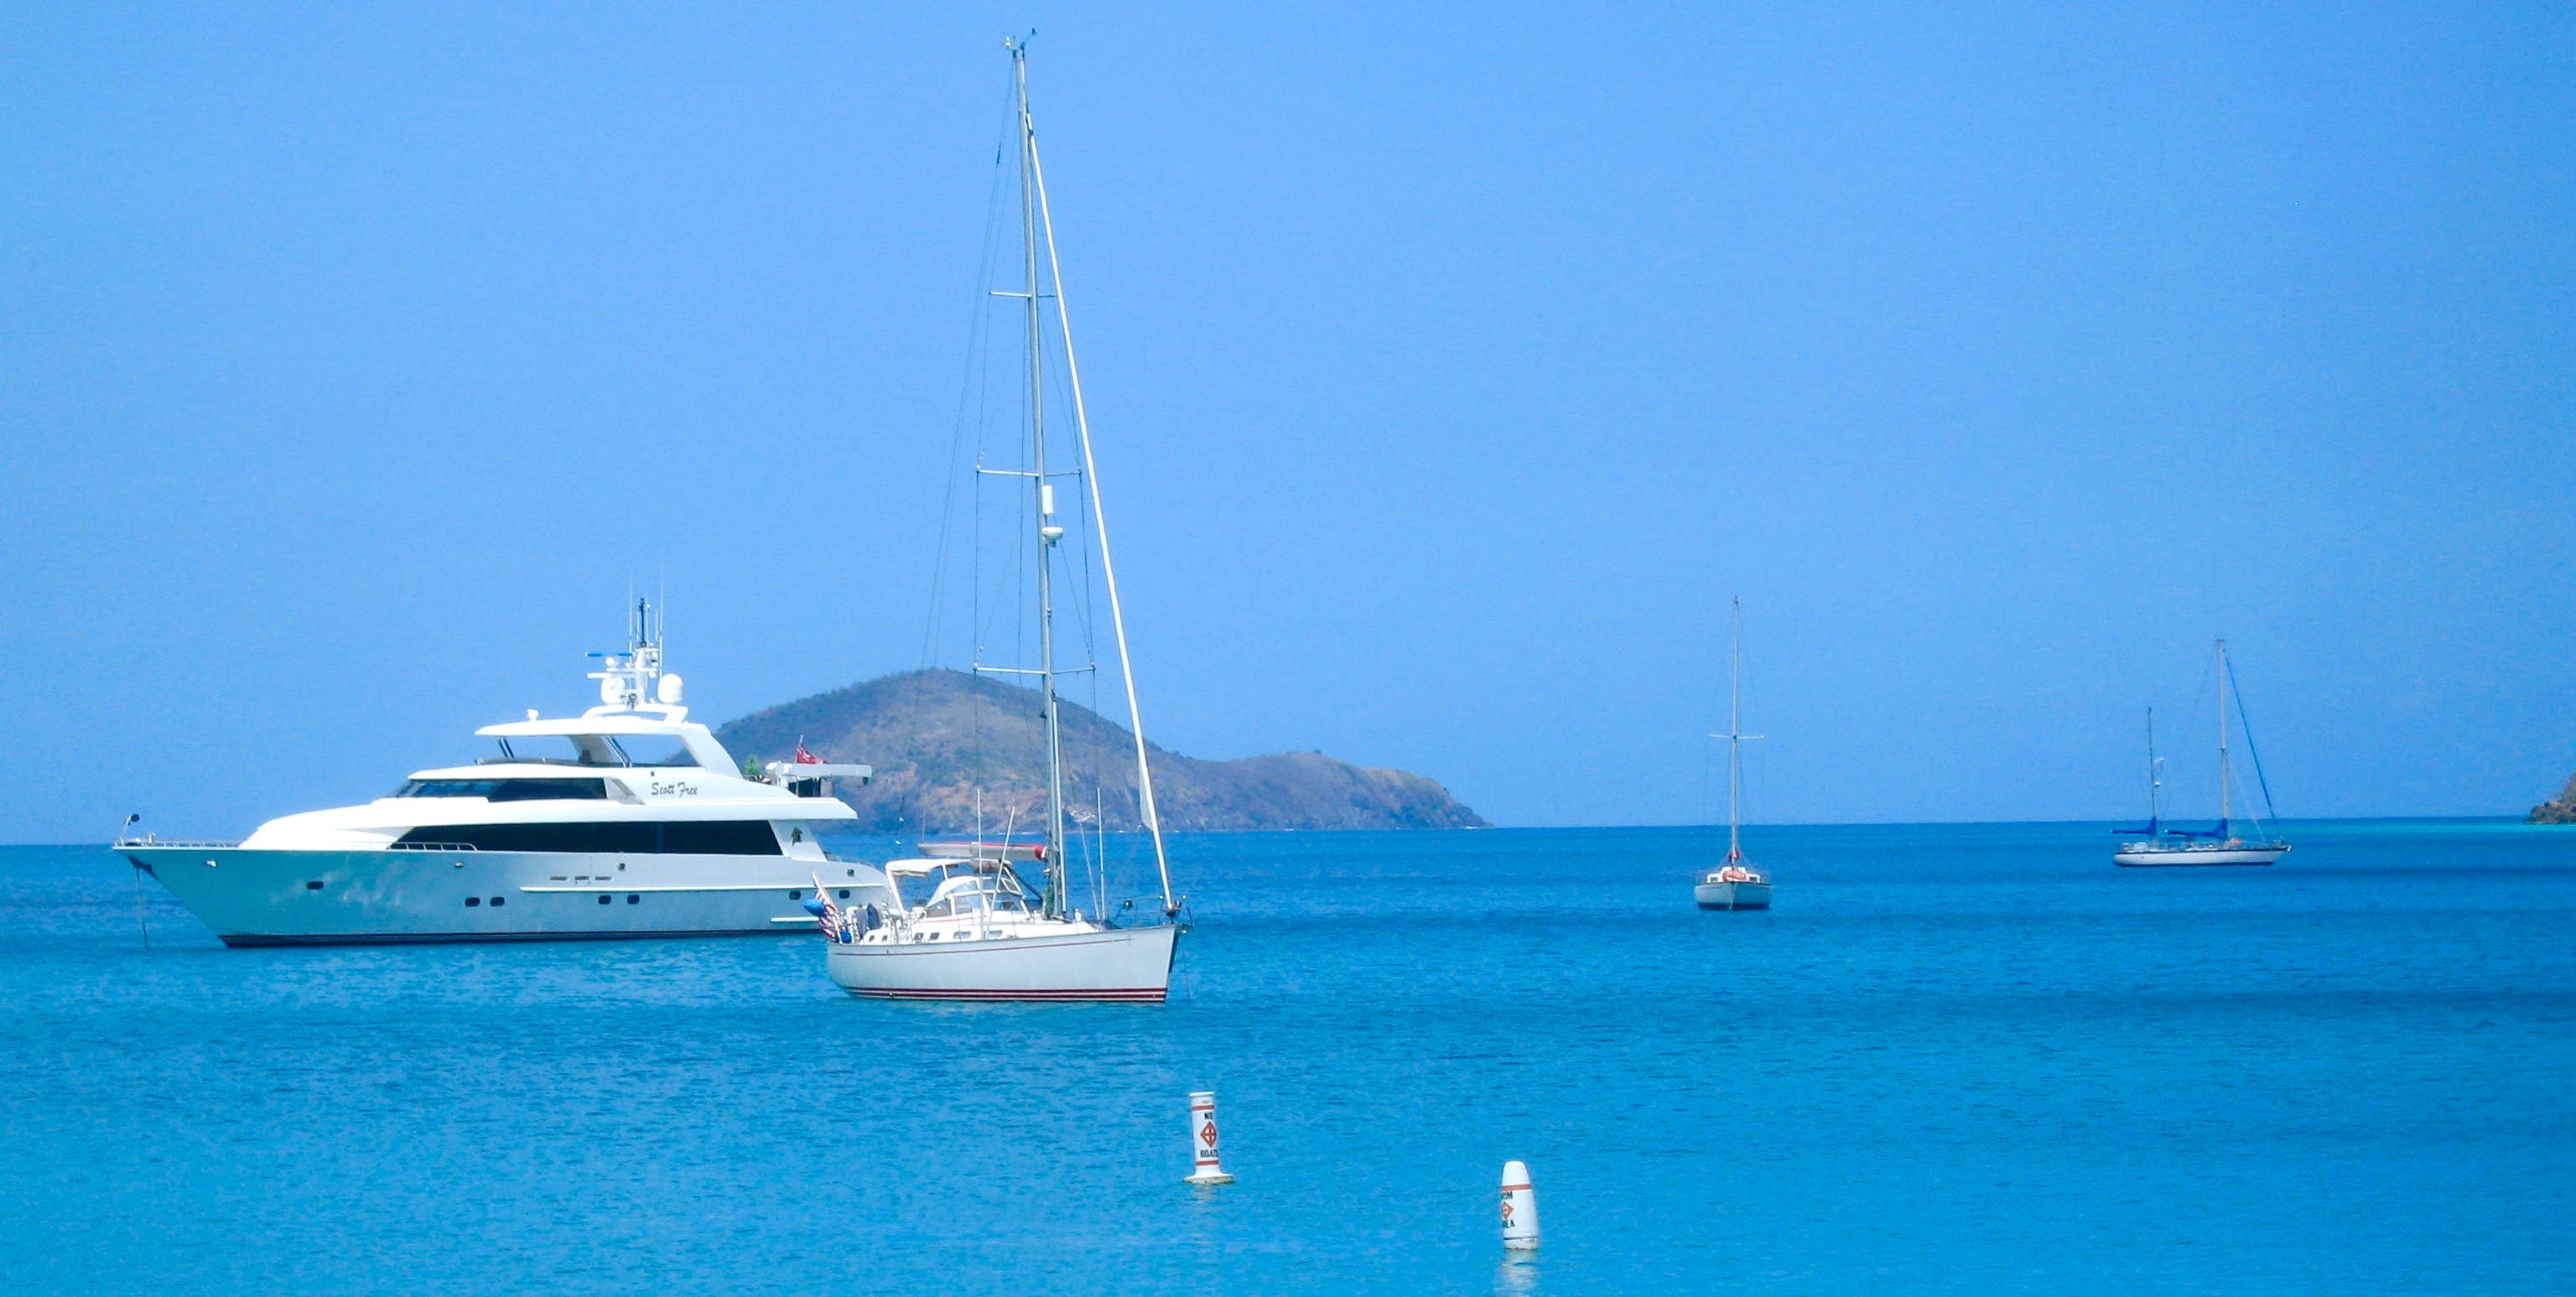 Body of Water and White Yacht